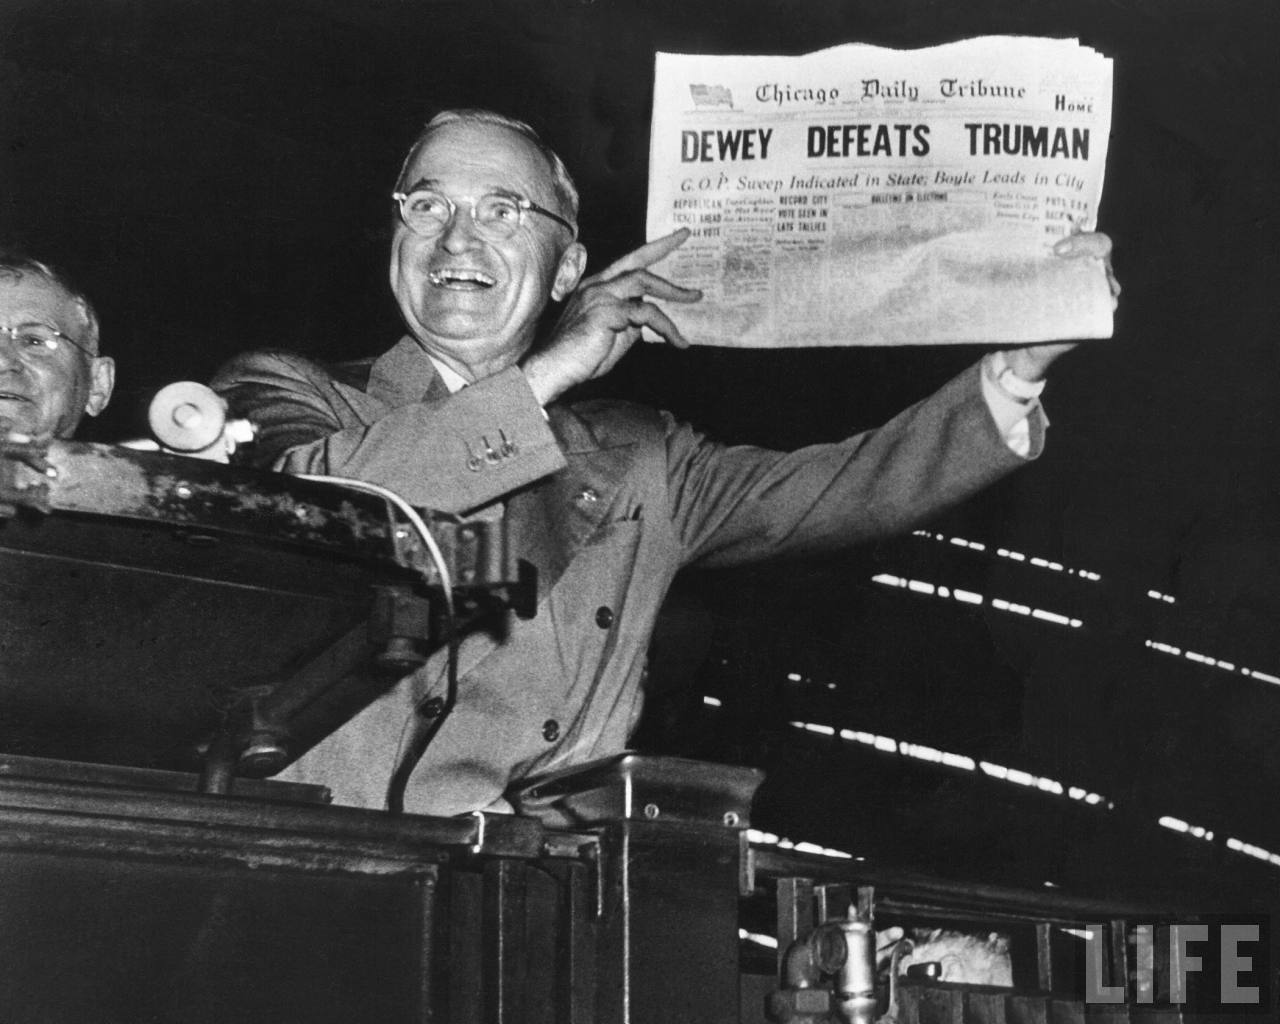 Deja Vu All Over Again Revisited Once >> Hump Day Hilarity Dewey Defeats Truman Deja Vu Watts Up With That